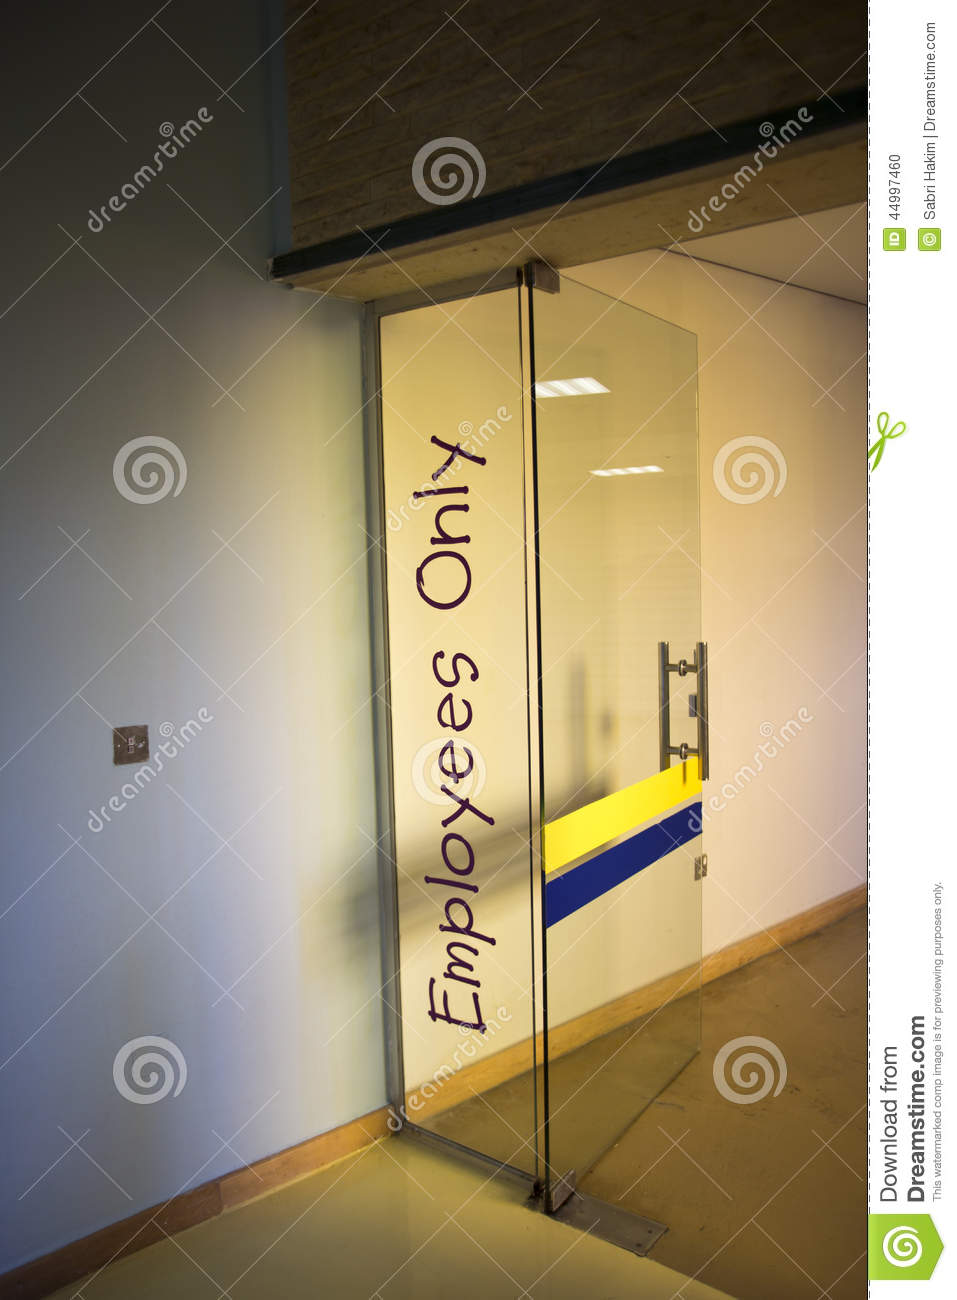 Employees Only Door Sign Stock Photo Image Of Exits 44997460